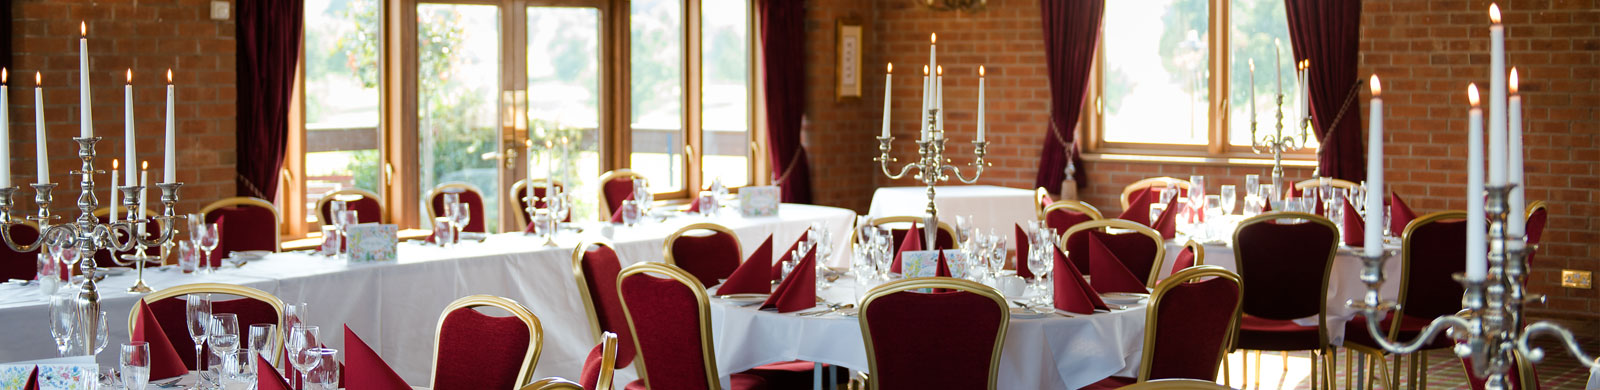 event-facilities-derbyshire-02.jpg